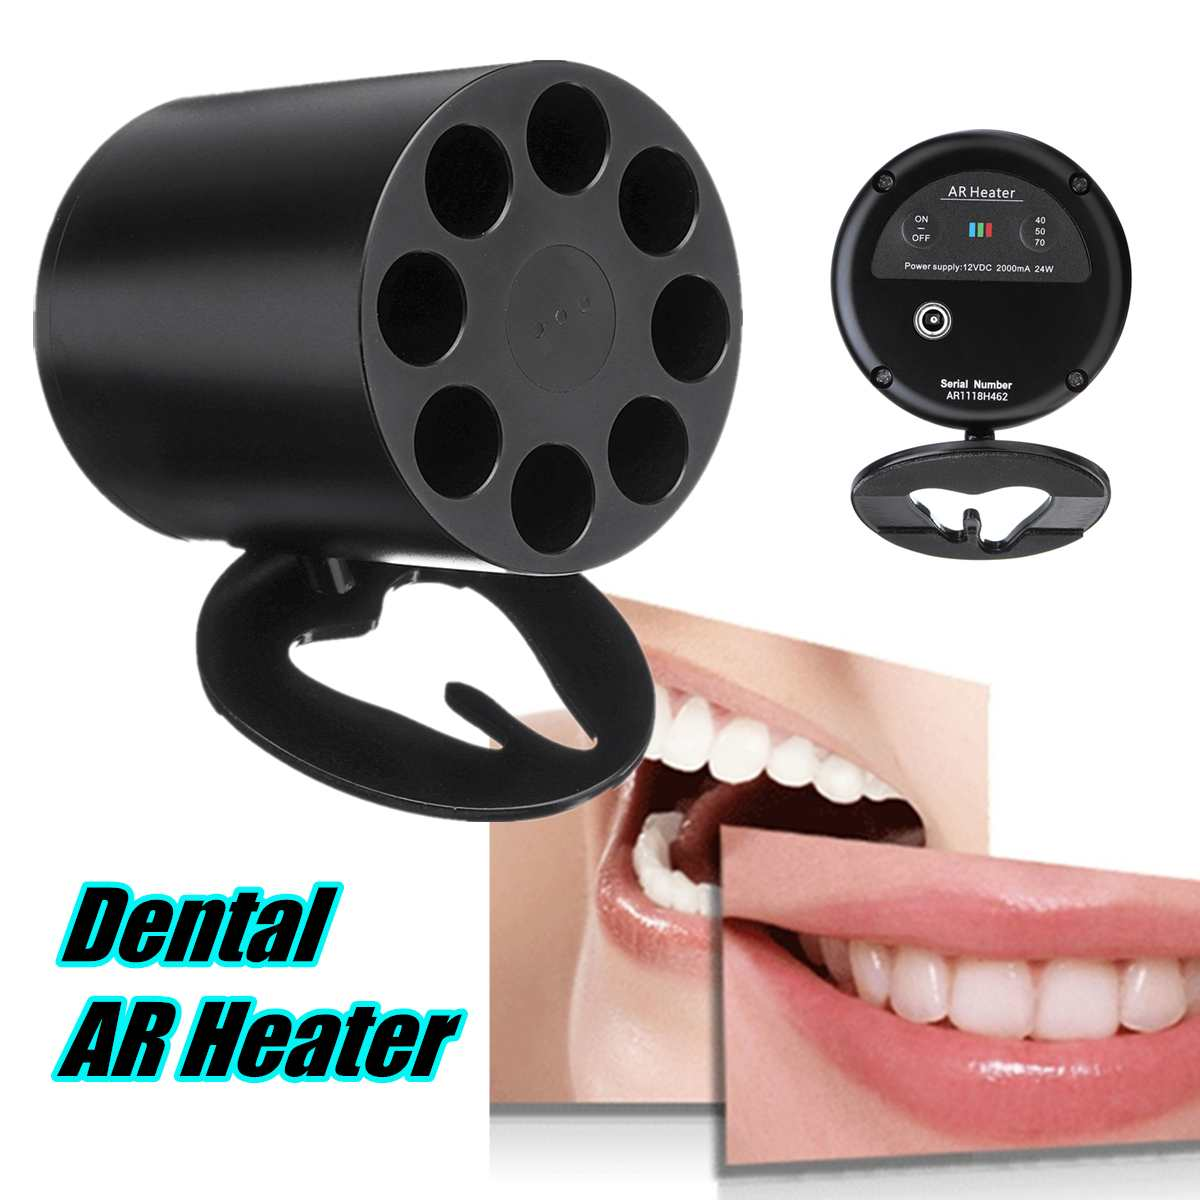 12V DC Composite Hot Heater Dental AR Heater Composite Resin Heating Composed Material Warmer Equipment Health Teeth Whitening12V DC Composite Hot Heater Dental AR Heater Composite Resin Heating Composed Material Warmer Equipment Health Teeth Whitening